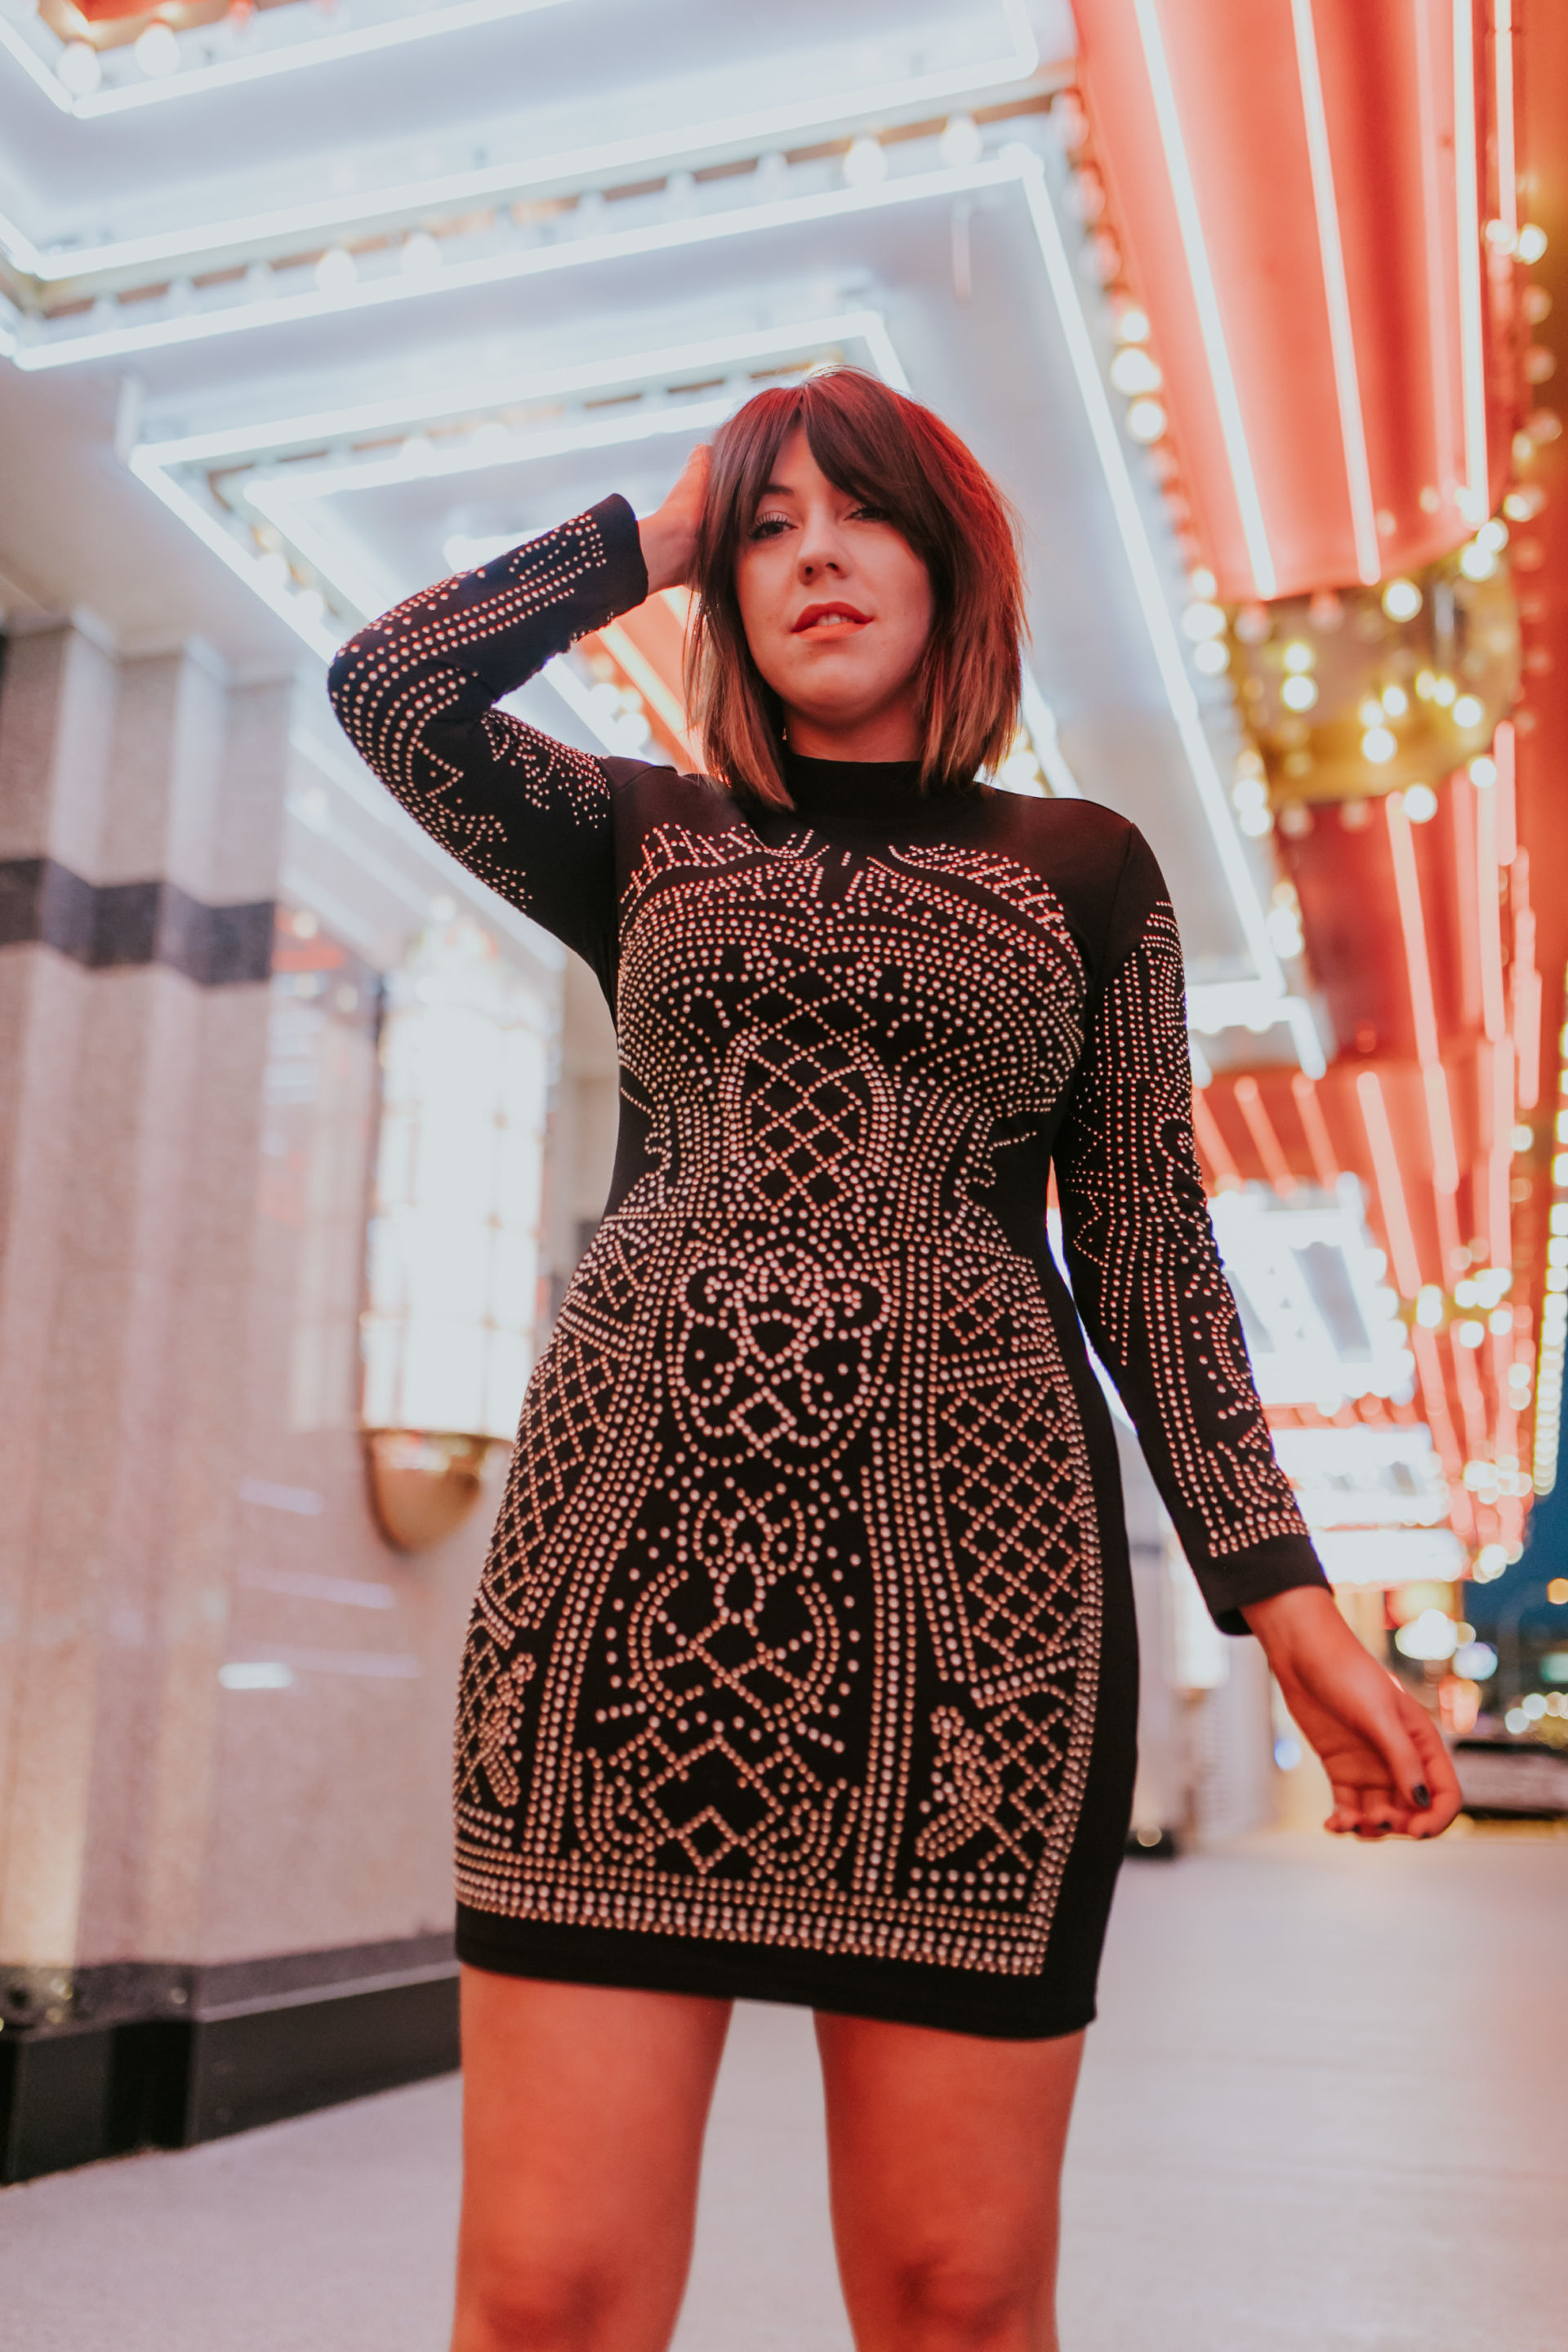 dbdaf032 Another Christmas, another season for partywear approaches and I am  EXCITED! I absolutely love festive dressing, the more sparkles, glitter &  sequins – the ...